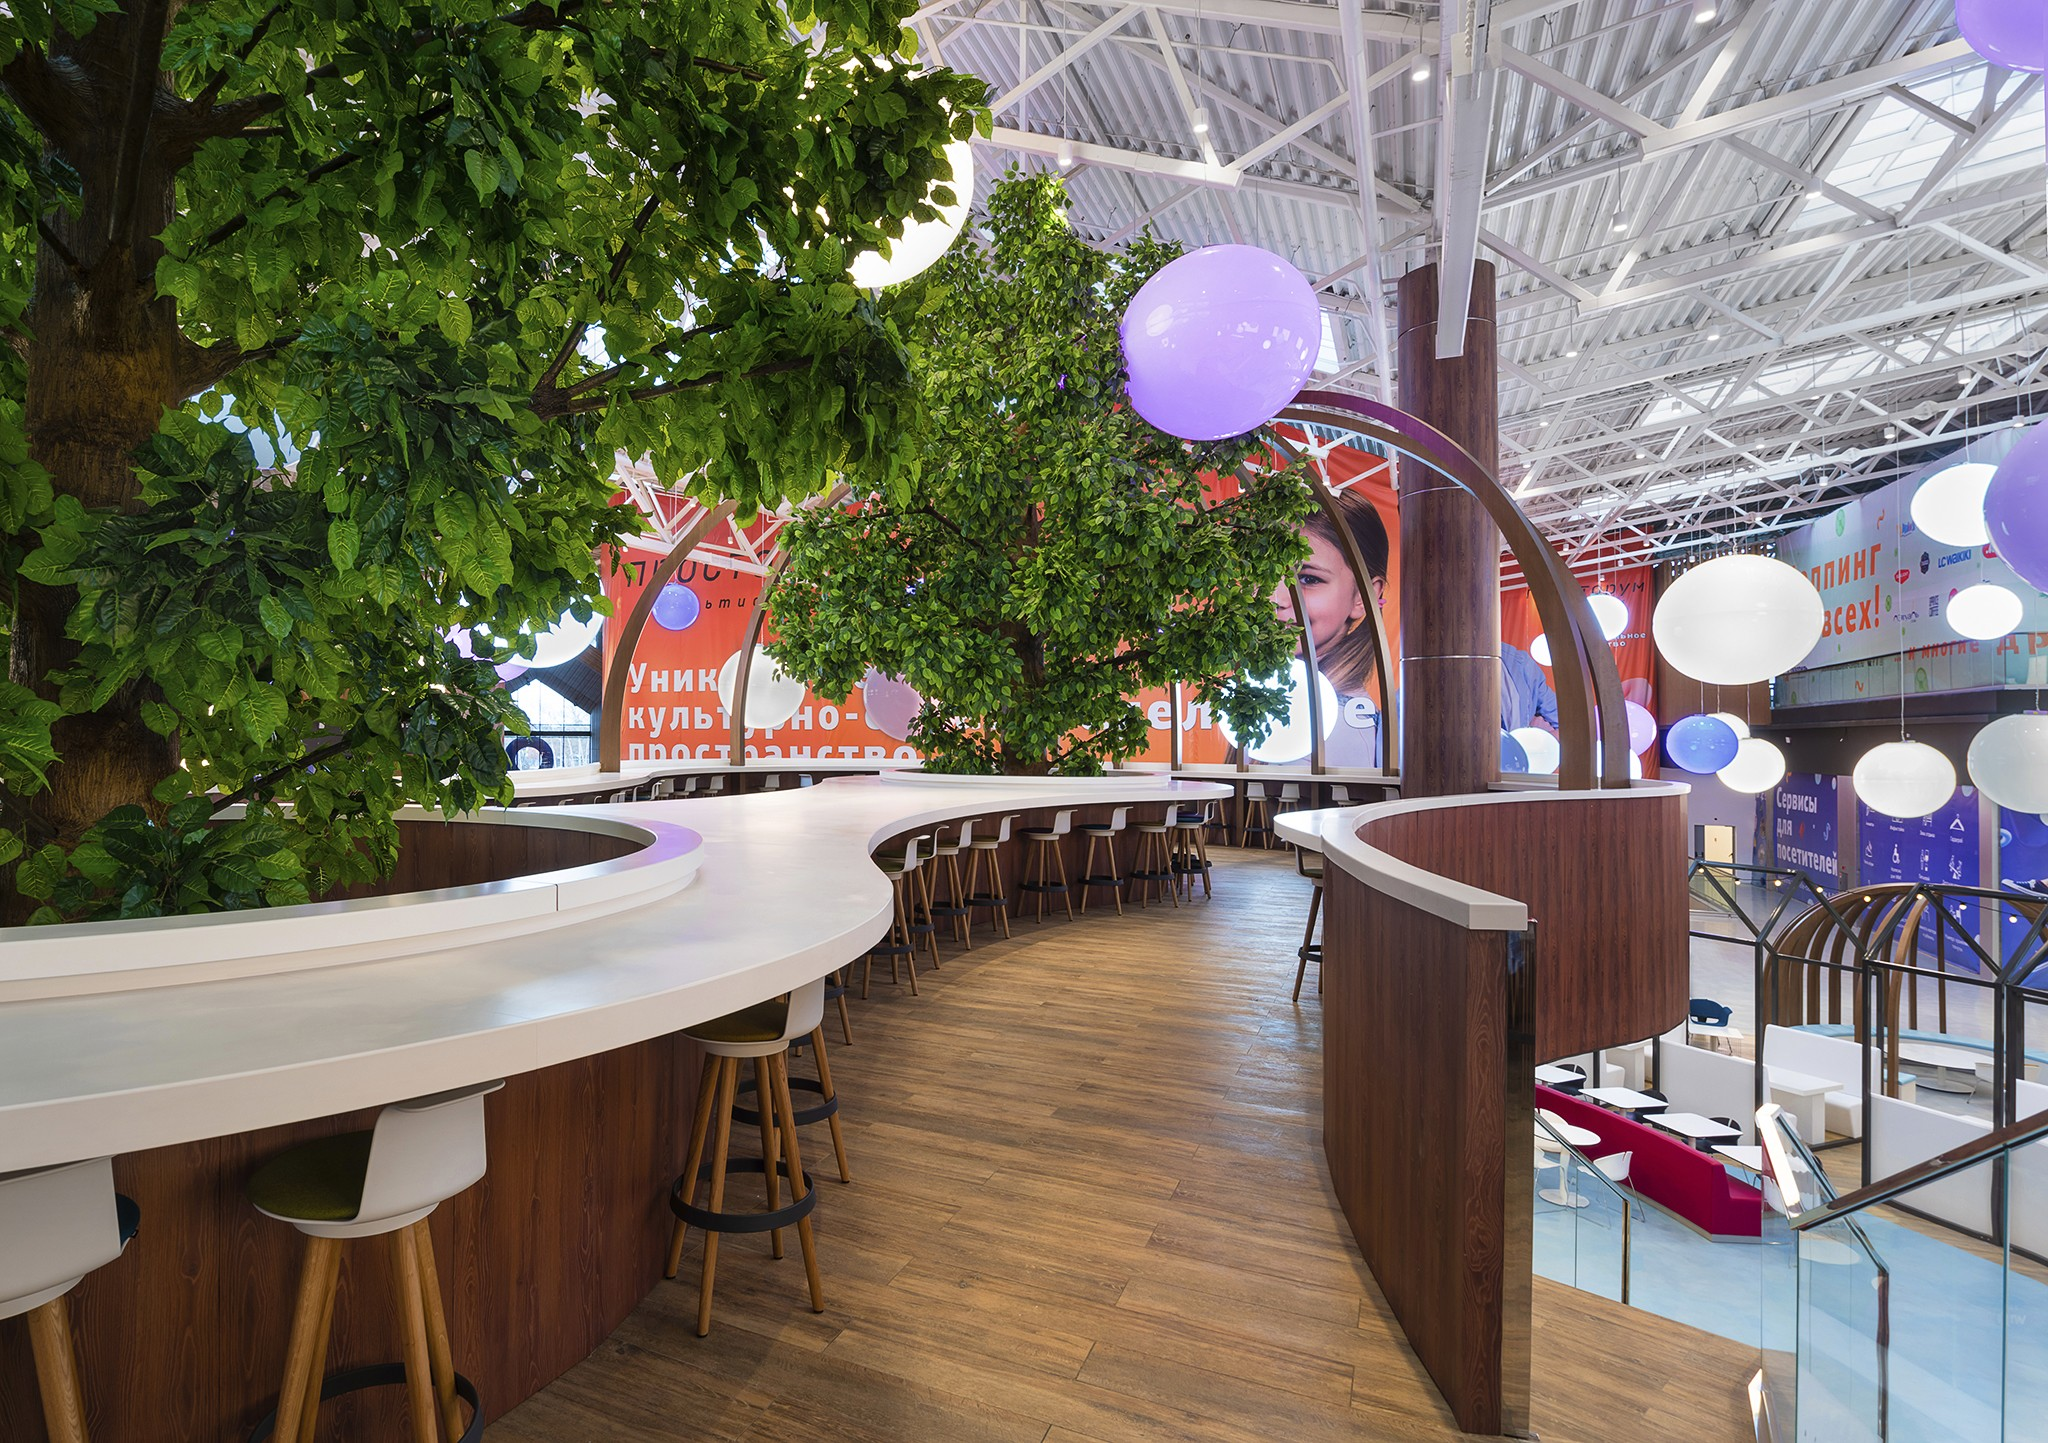 professional photos of the interior of the food court of the shopping and entertainment center